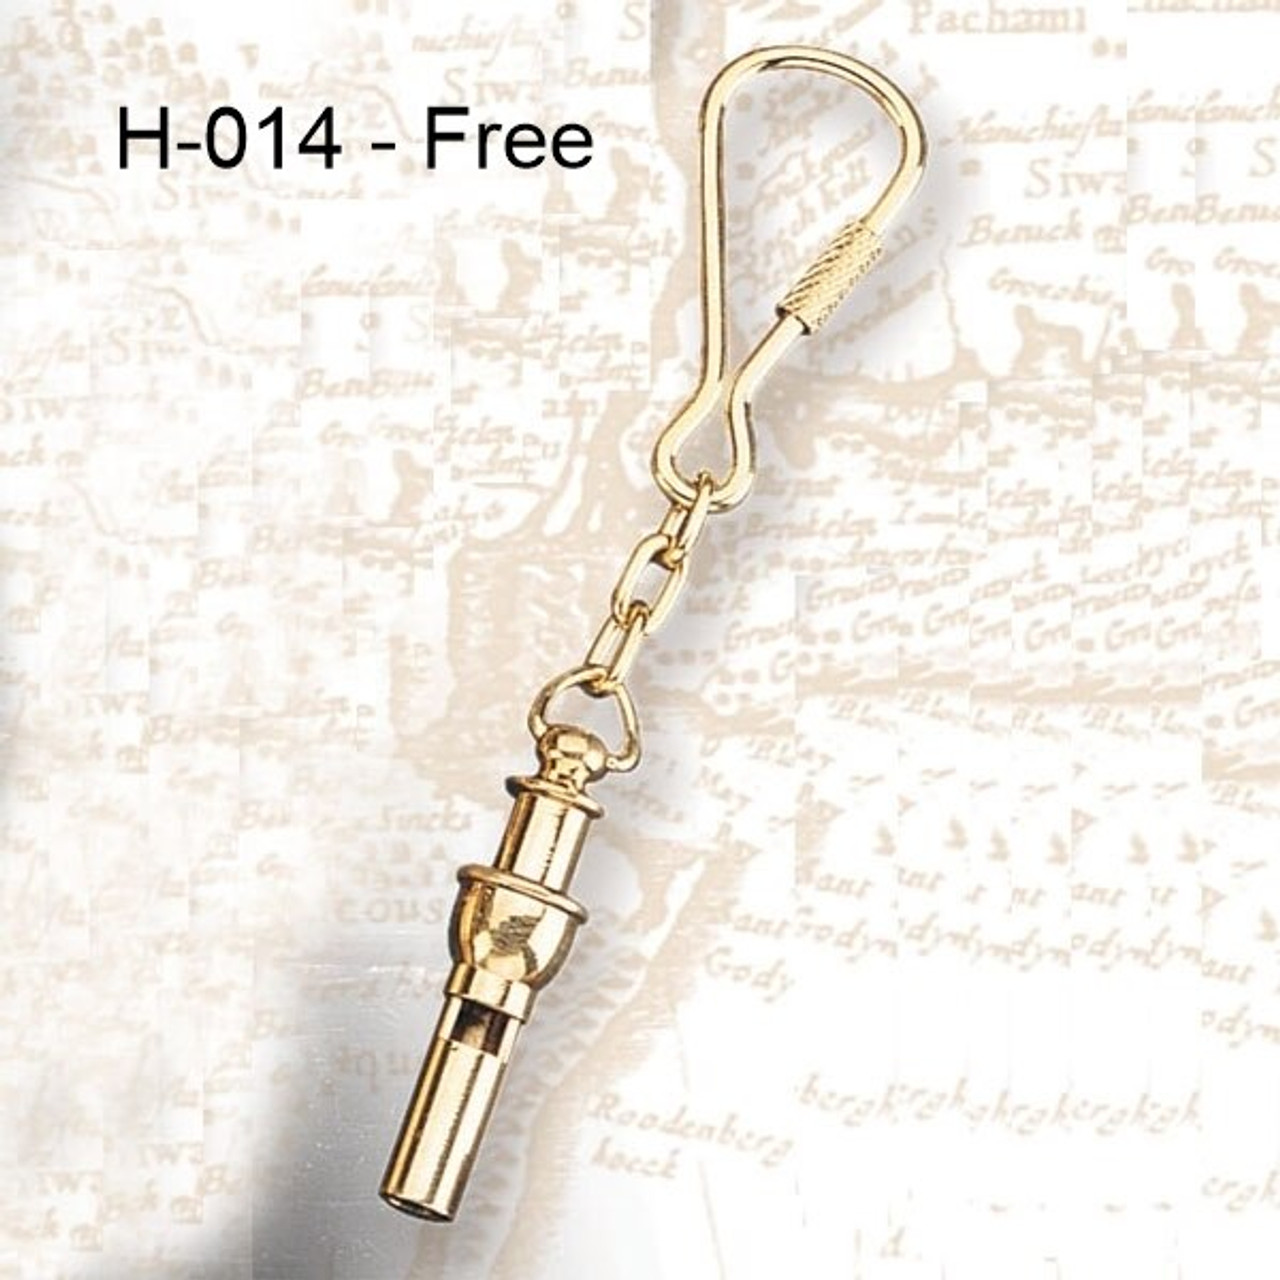 """H - 014 -  Bosun's Whistle Key Chain Option Free with Purchase of (BP-710) 17.25"""" Wooden Ships Wheel Mirror"""